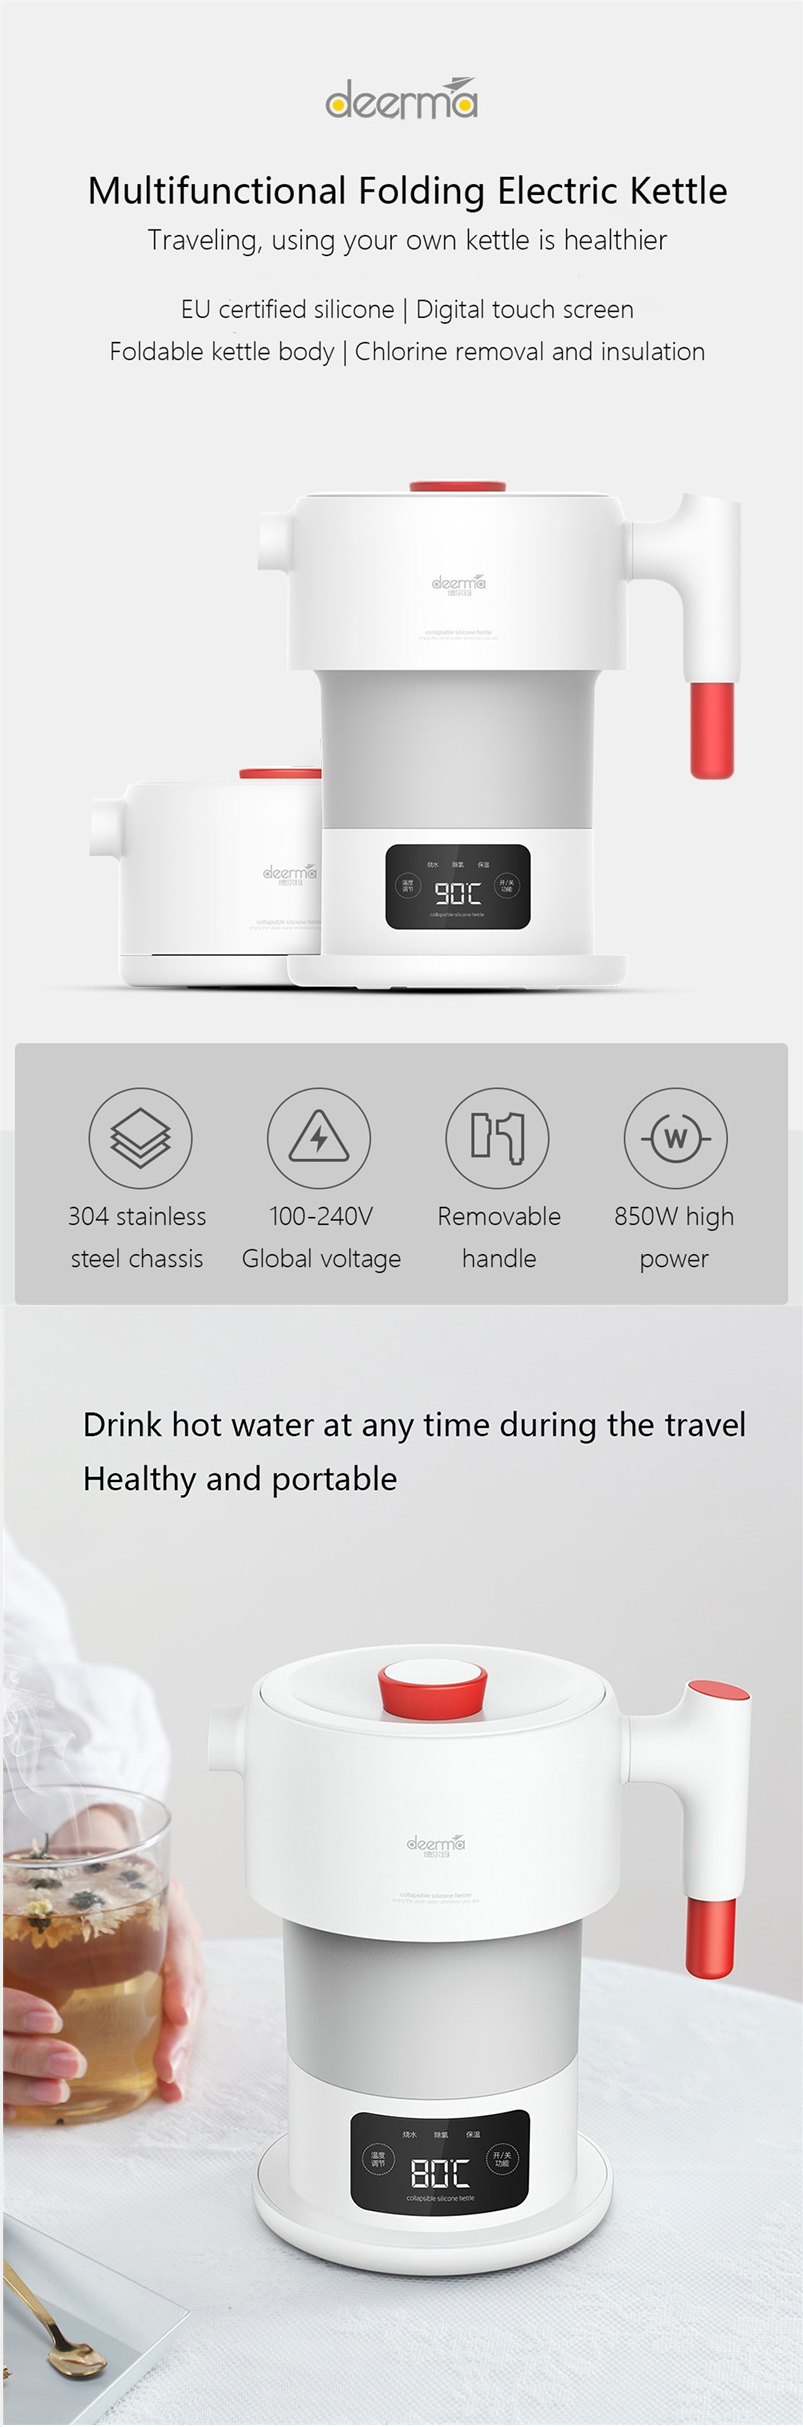 Deerma DEM-DH207 0.6L Portable Travel Folding Electric Kettle Smart Touch Control Insulation Pot